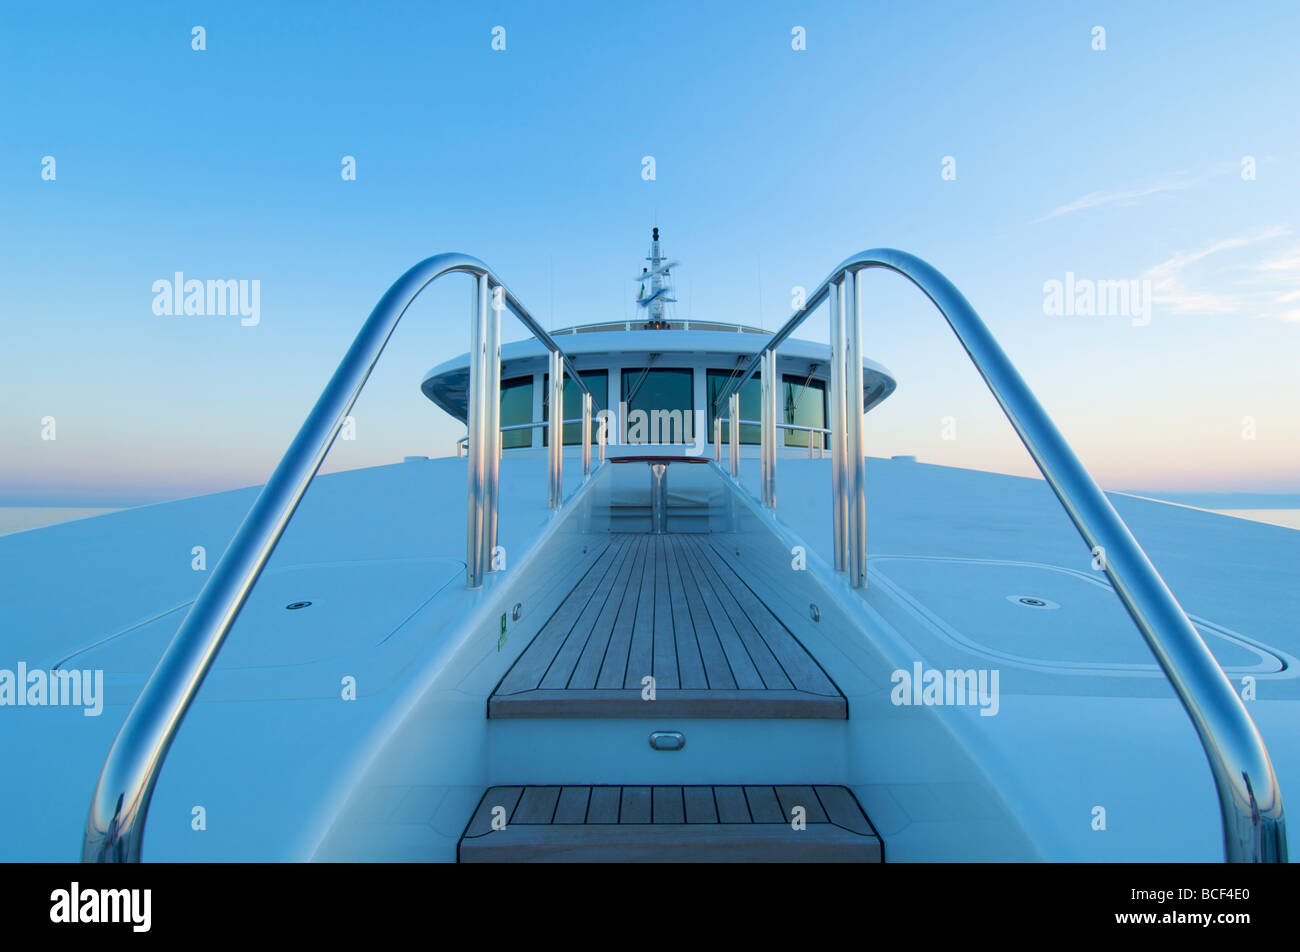 Luxury yacht foredeck details  - Stock Image